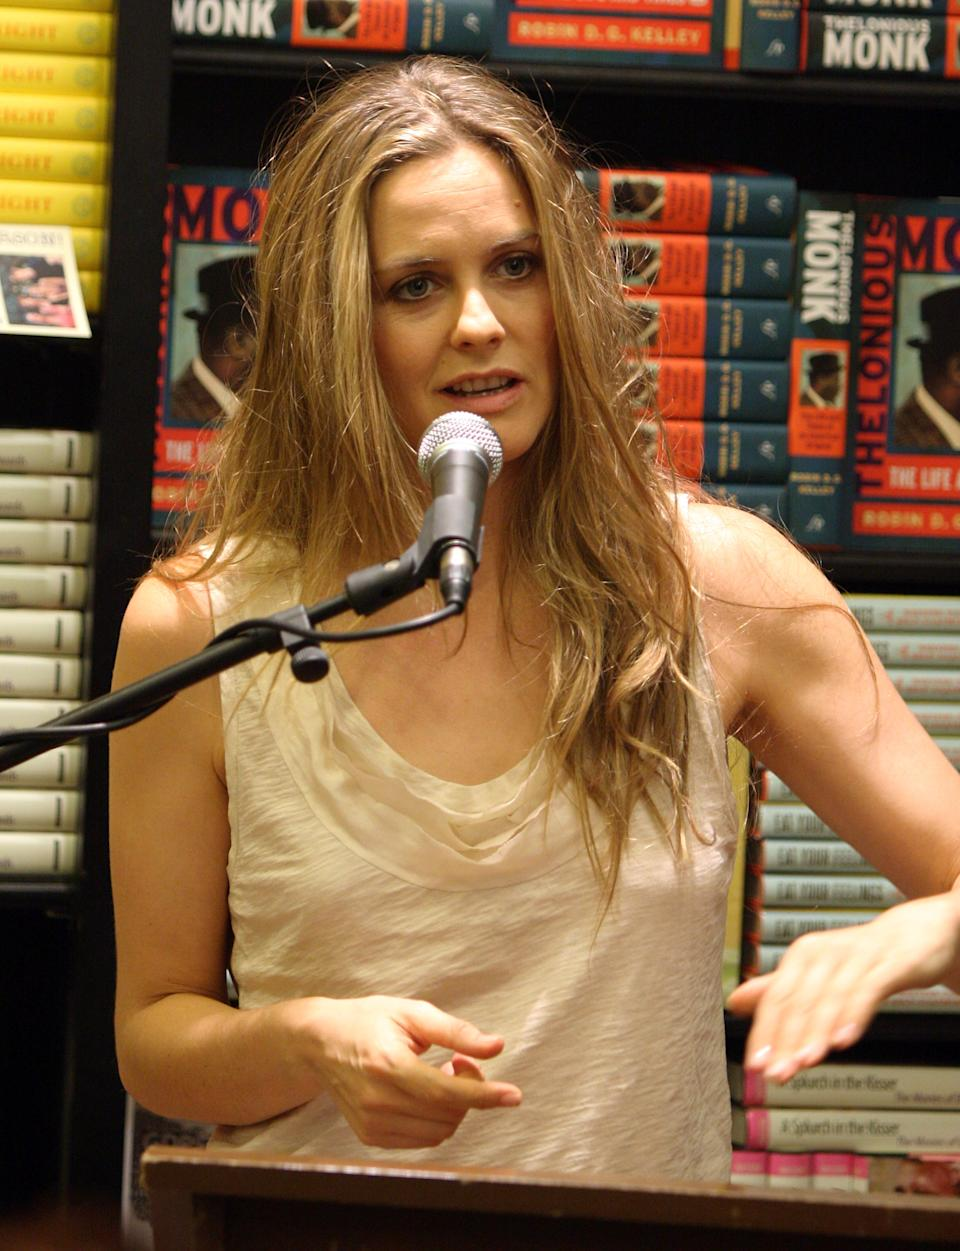 WEST HOLLYWOOD, CA - OCTOBER 15: Actress Alicia Silverstone discusses her new book 'The Kind Diet: A Simple Guide to Feeling Great, Losing Weight, and Saving the Planet' at Book Soup on October 15, 2009 in West Hollywood, California. (Photo by Angela Weiss/Getty Images)